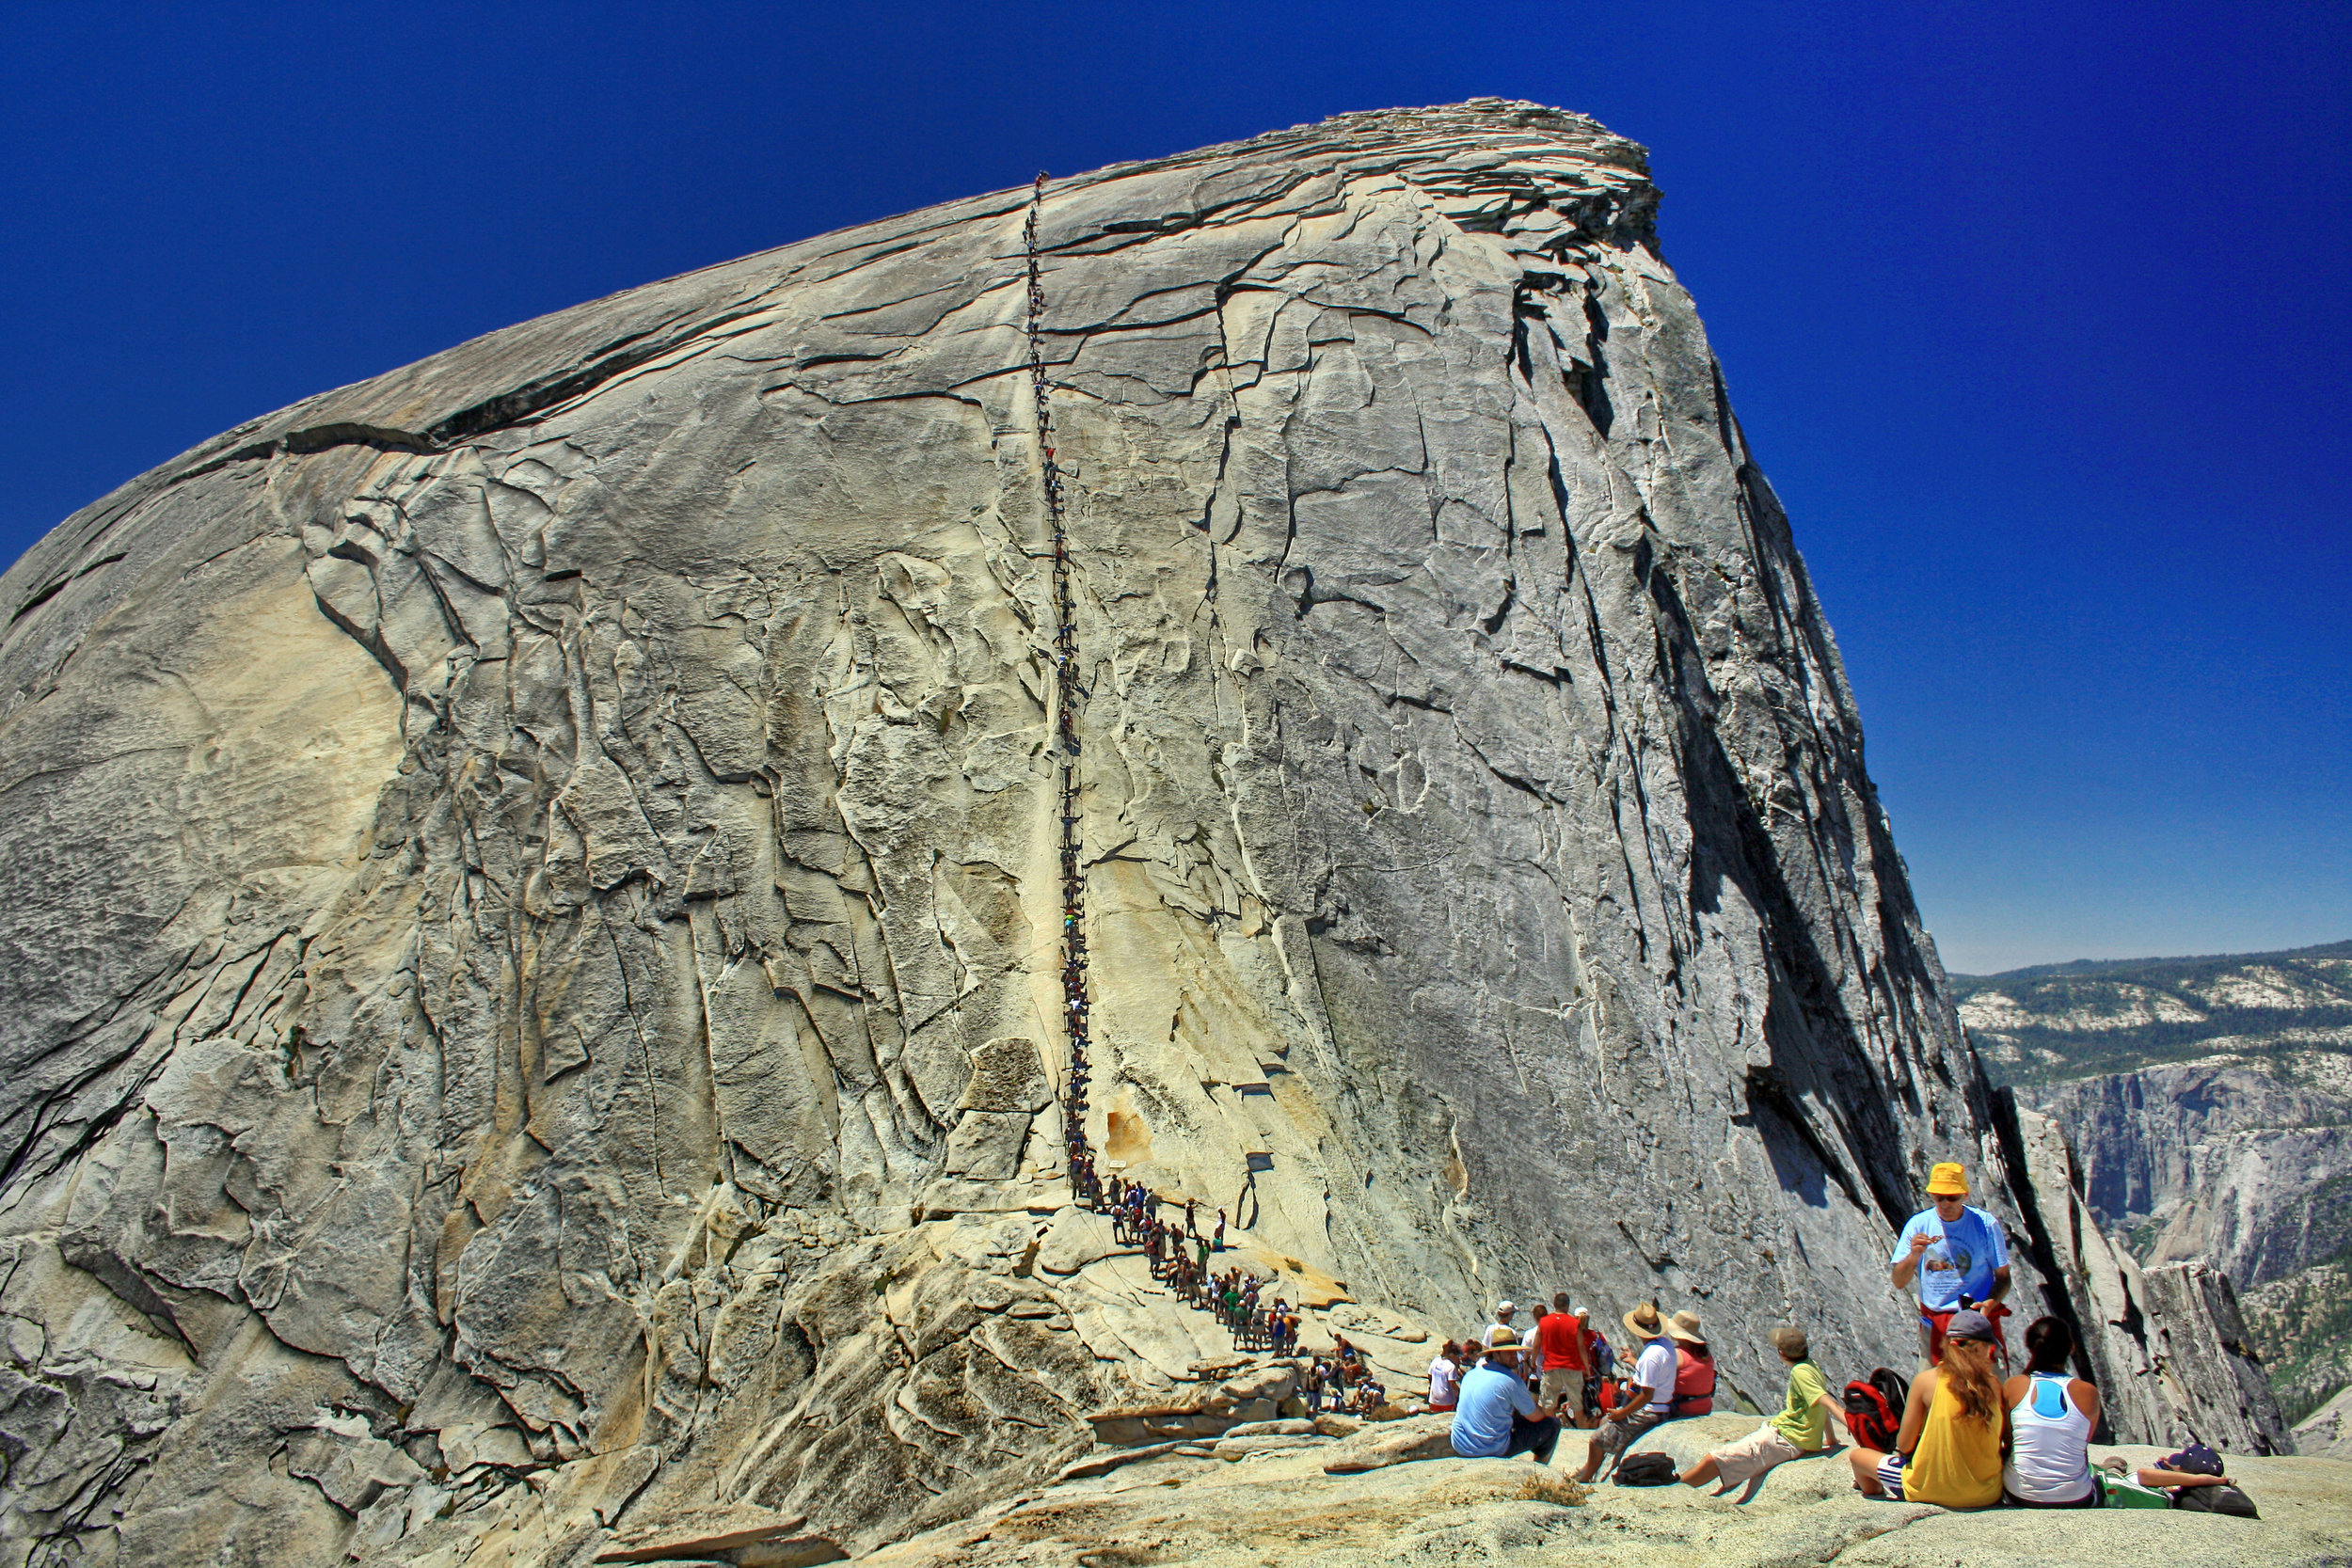 Half_dome_yosemite_nationalpark_t1.jpeg